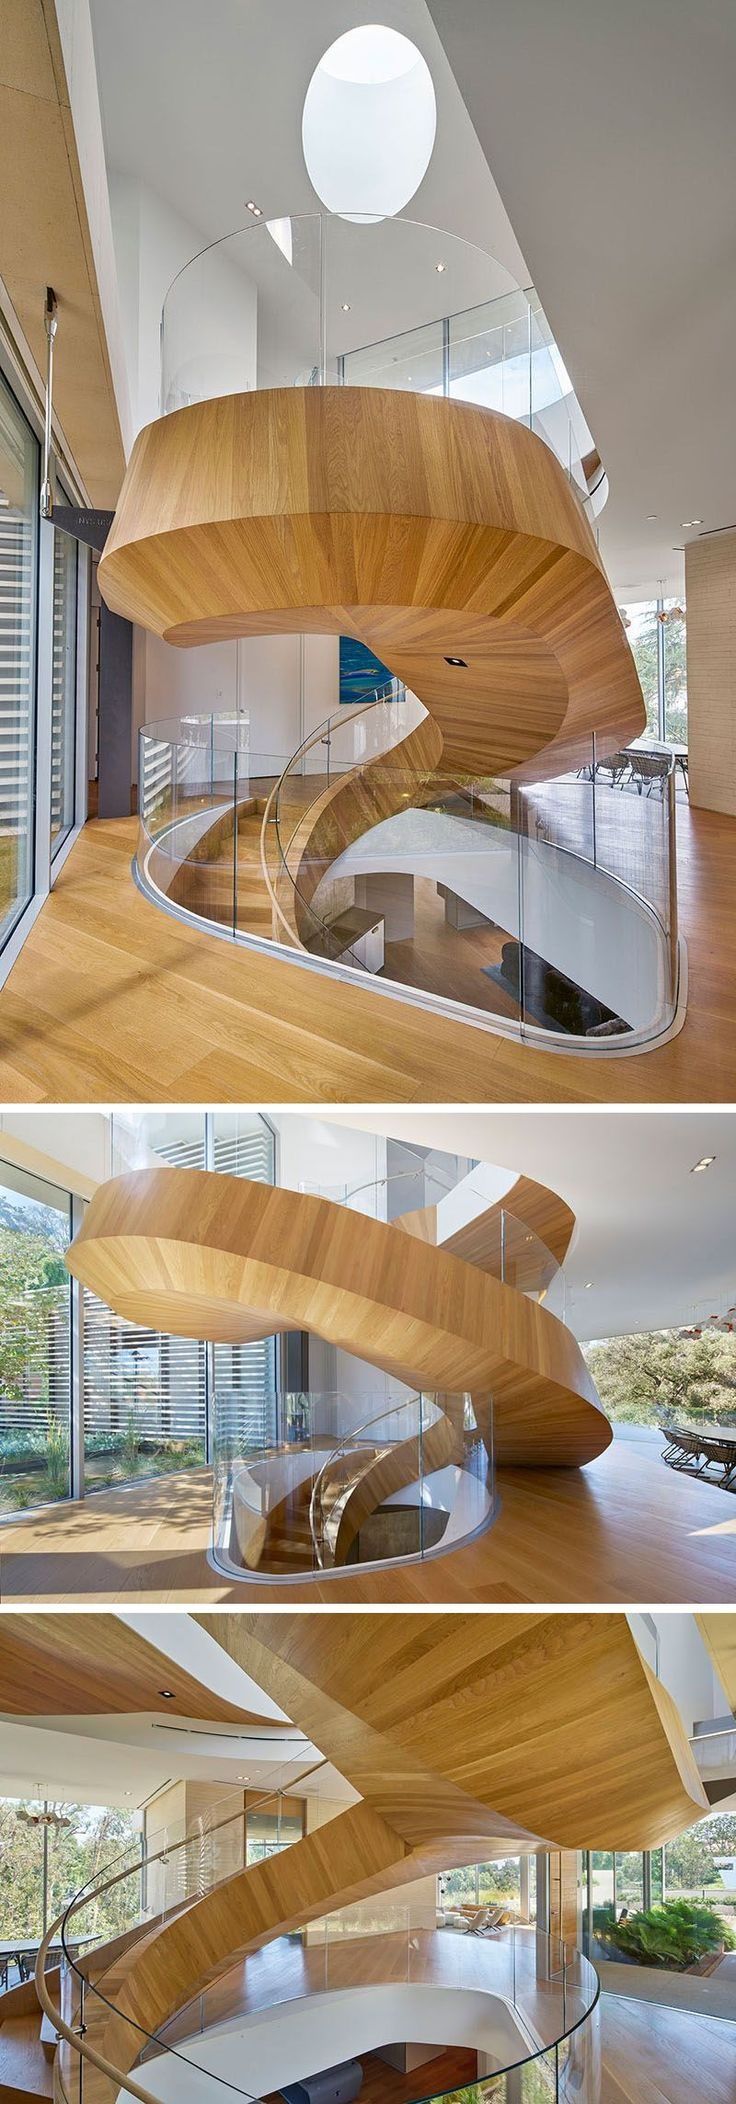 This large wood and spiral staircase not only connects various levels of the home but also divides the space and acts as a sculptural installation.